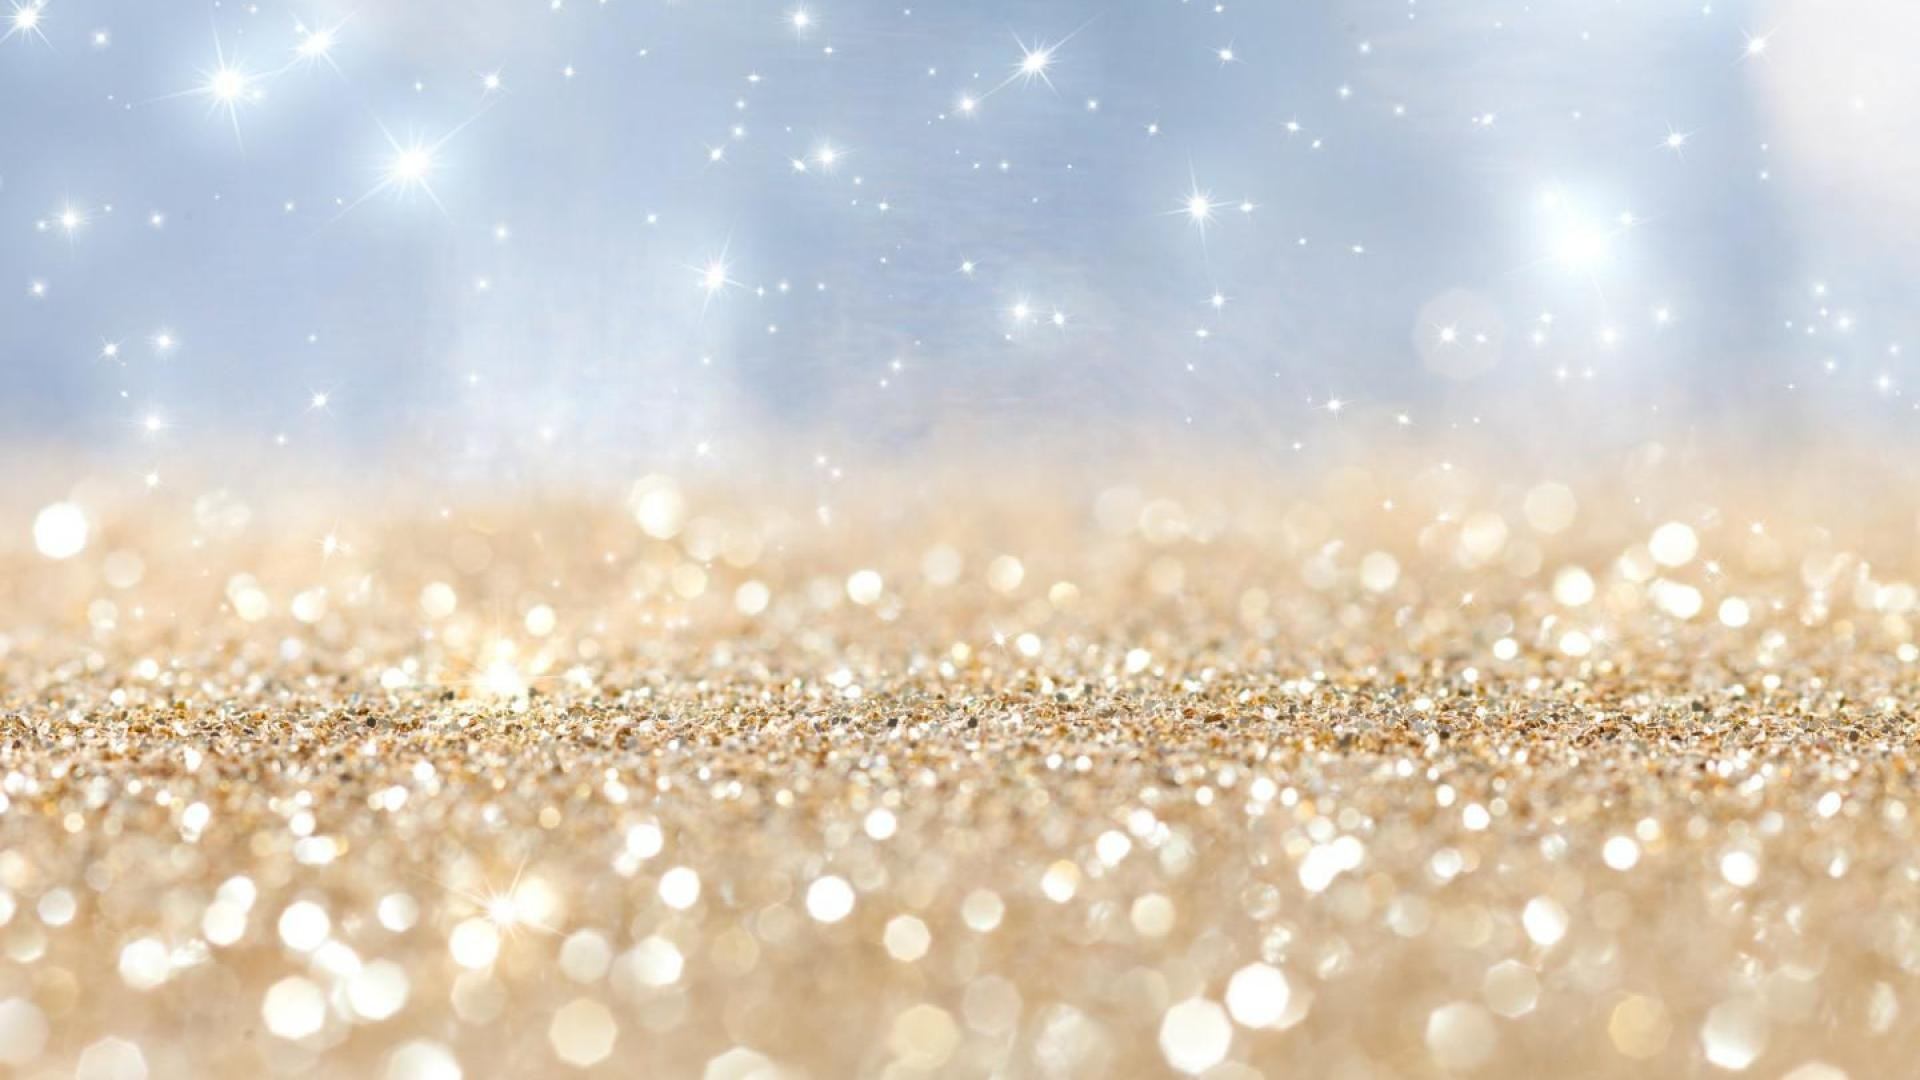 1920x1080 Glitter HD Wallpaper 3